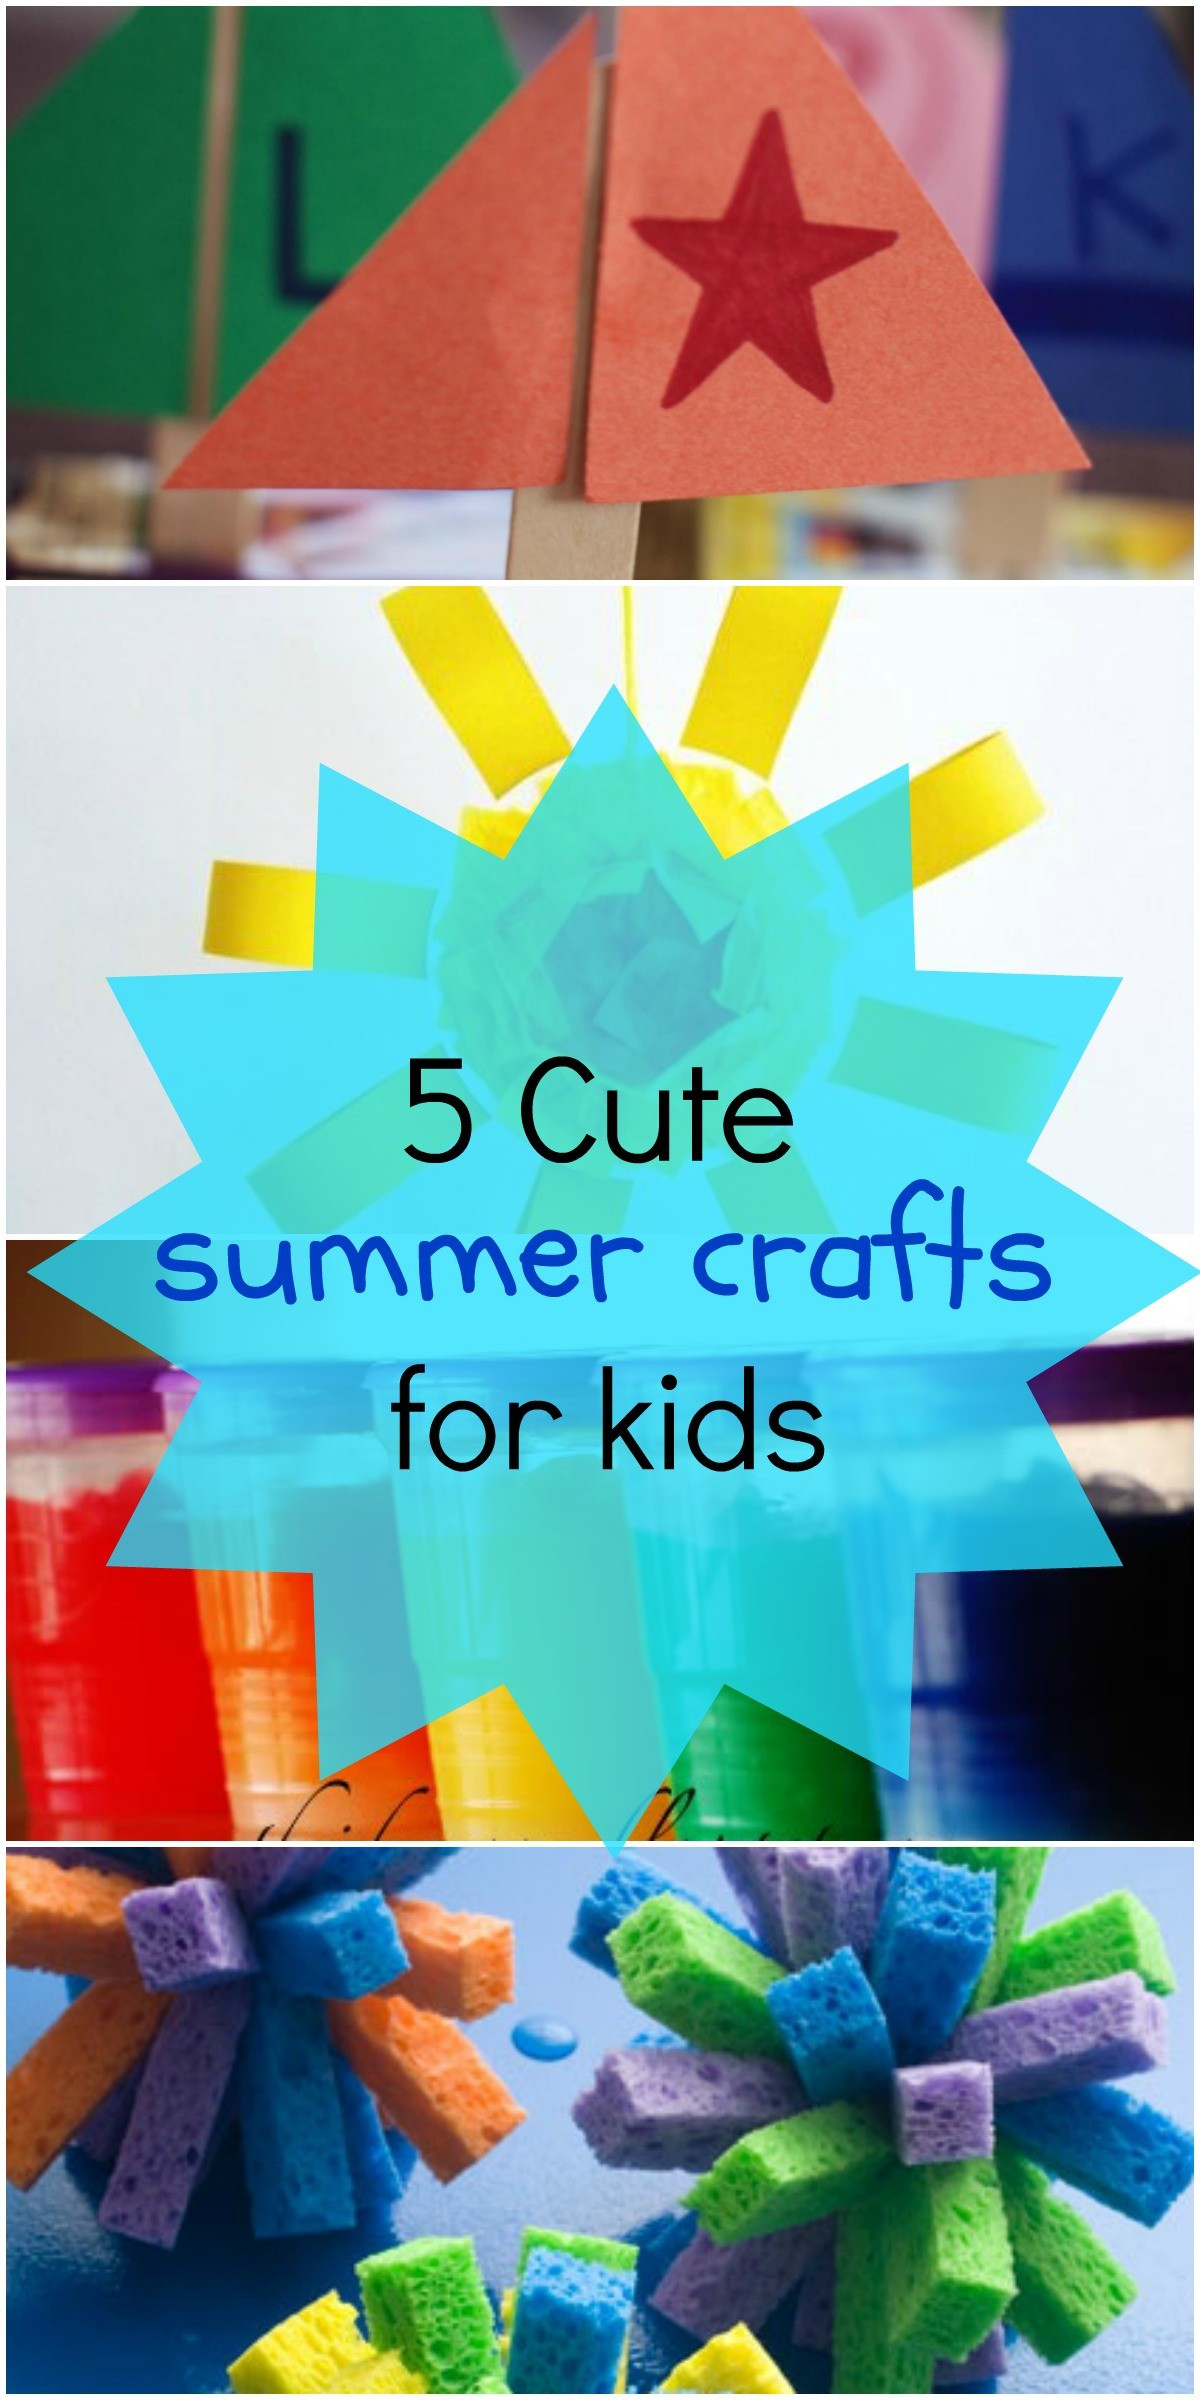 Summer Crafts For Children  5 Fun Summer Crafts for Kids Love These Art Project Ideas